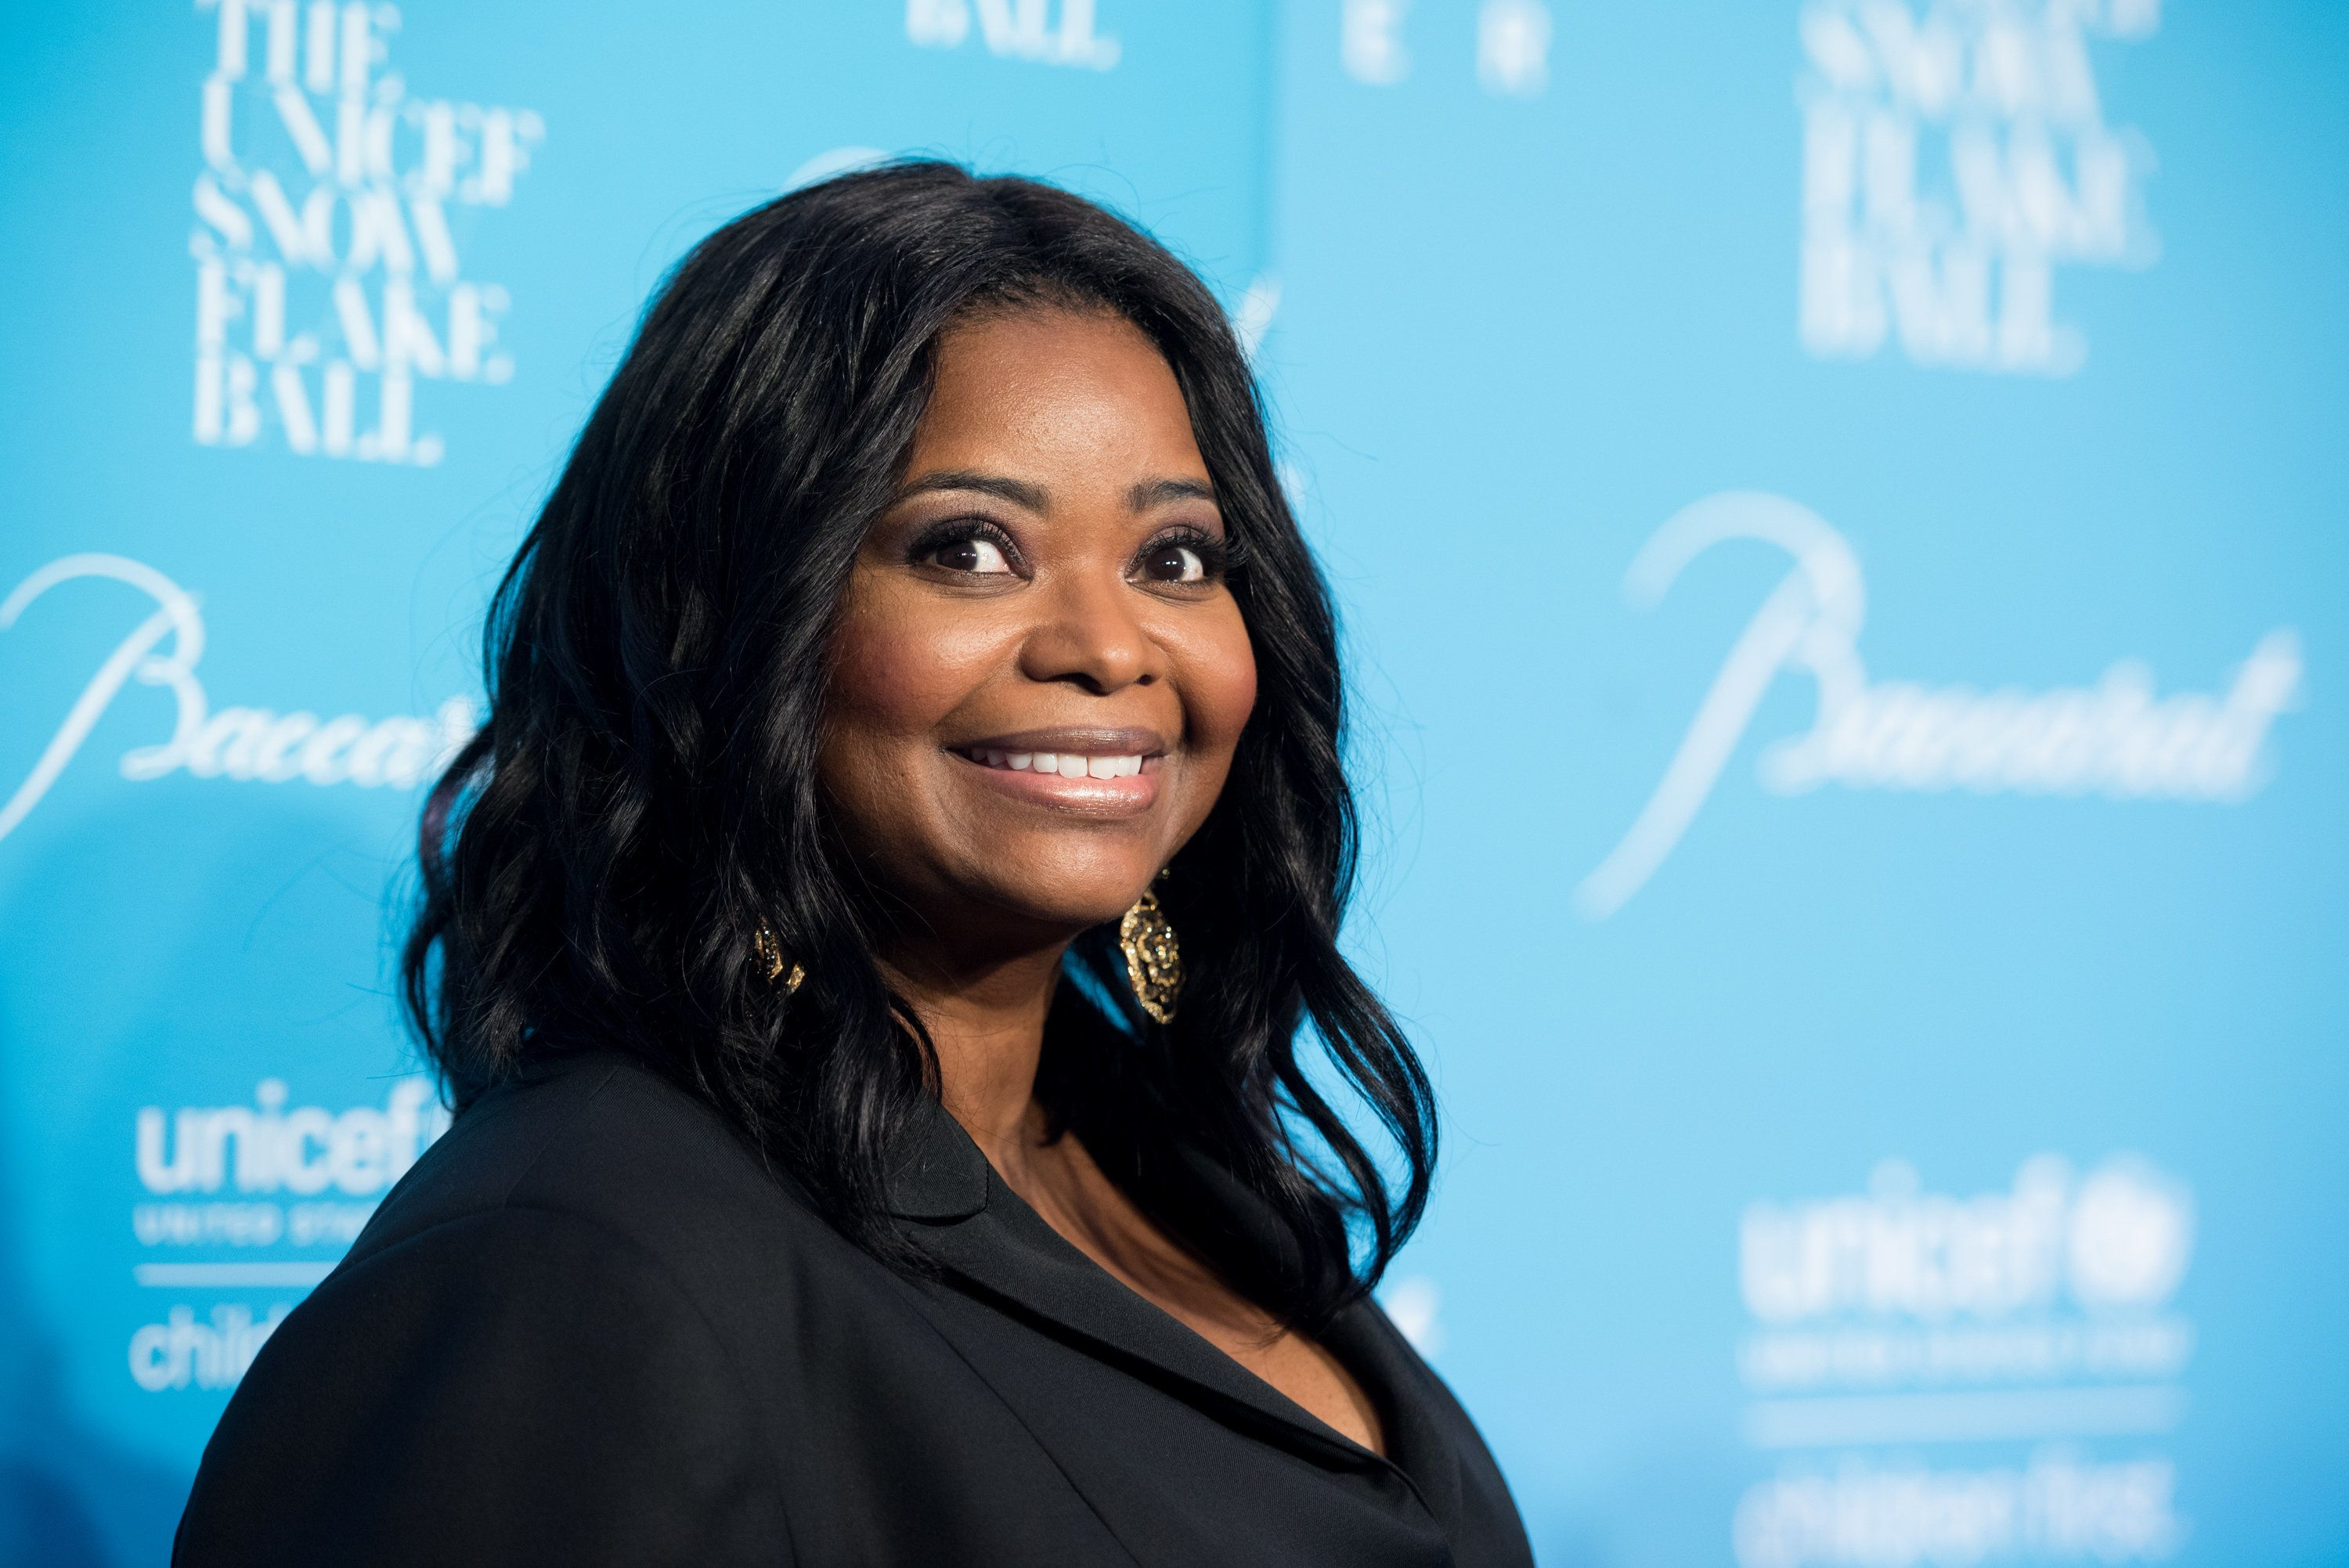 NEW YORK, NY - NOVEMBER 29:  Actress Octavia Spencer attends the 12th Annual UNICEF Snowflake Ball at Cipriani Wall Street on November 29, 2016 in New York City.  (Photo by Noam Galai/WireImage)